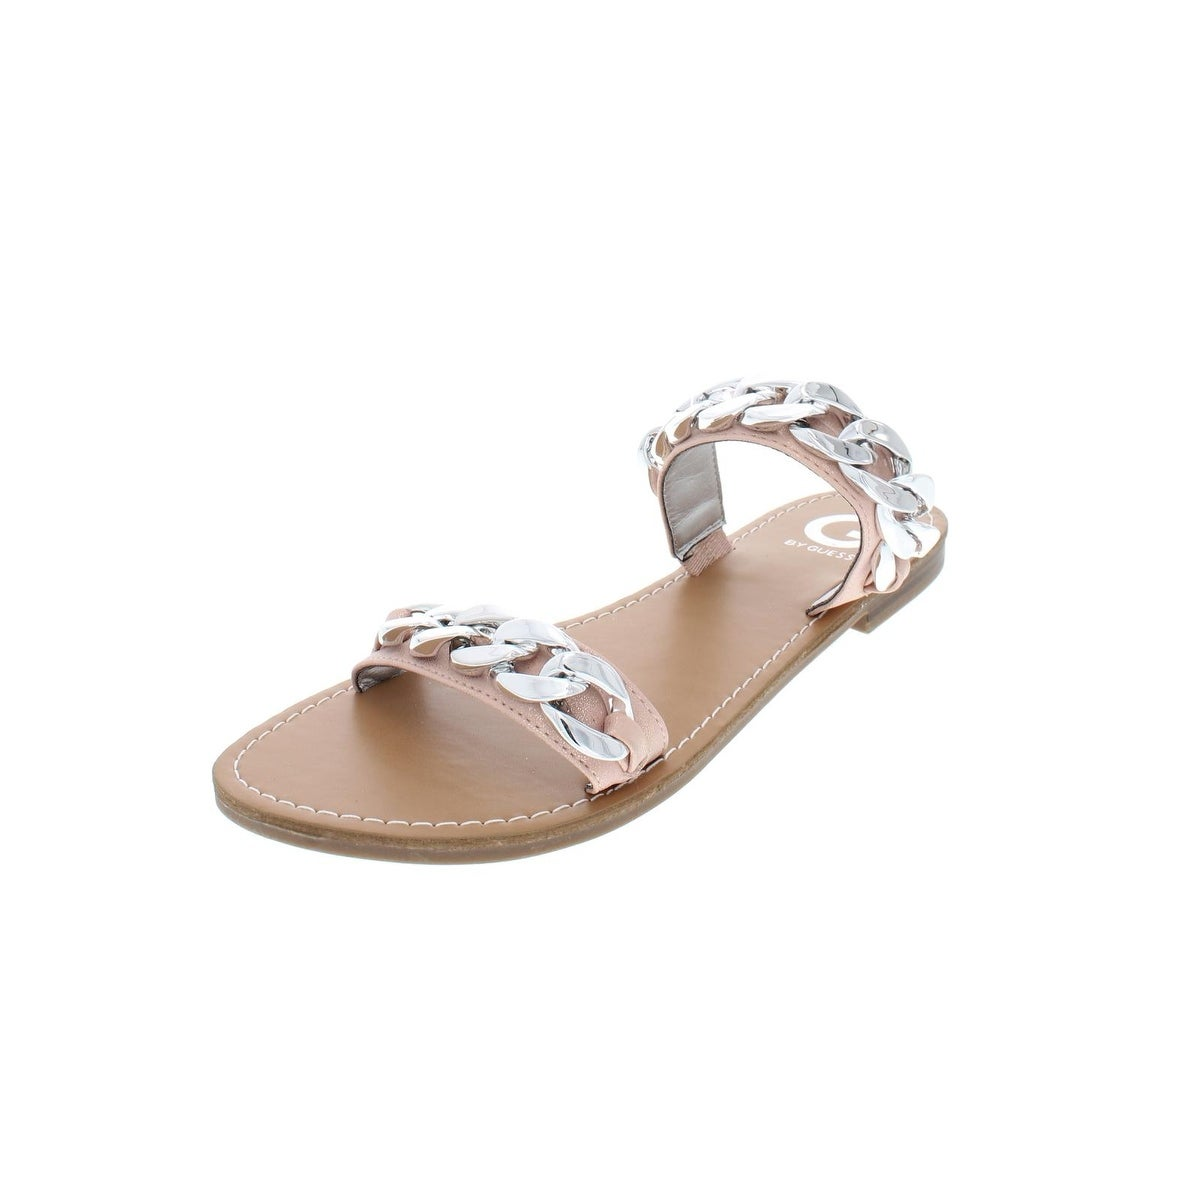 22f55740faa Shop G by Guess Womens Tunez Flat Sandals Faux Leather Slides - Free ...